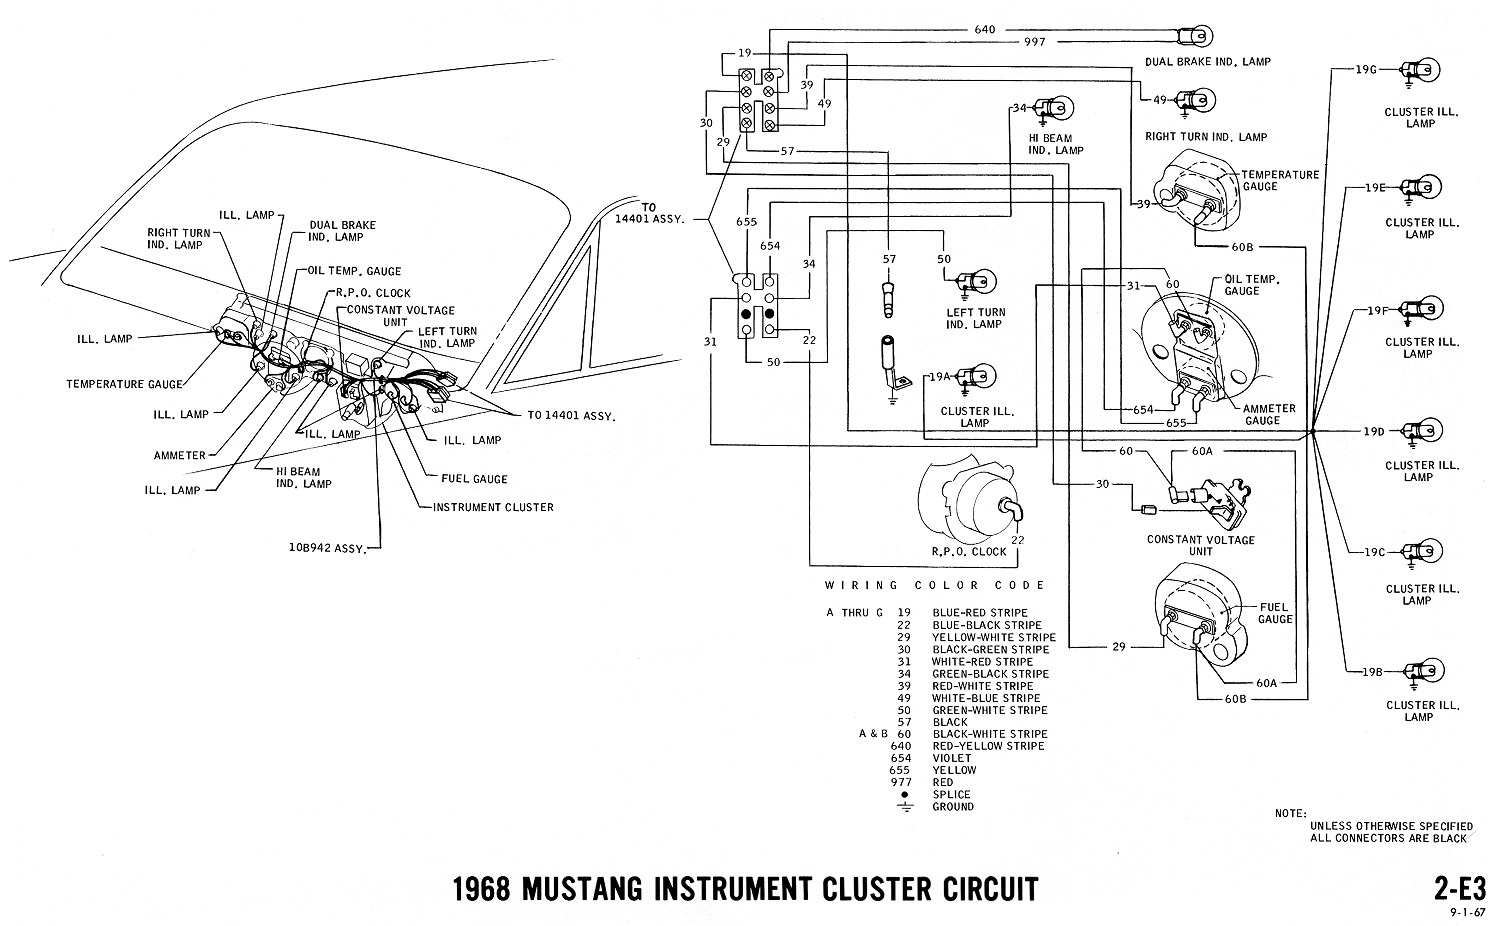 1968 mustang wiring diagram instruments averagejoerestoration com wp content gallery 1968 1966 mustang wiring diagram pdf at alyssarenee.co